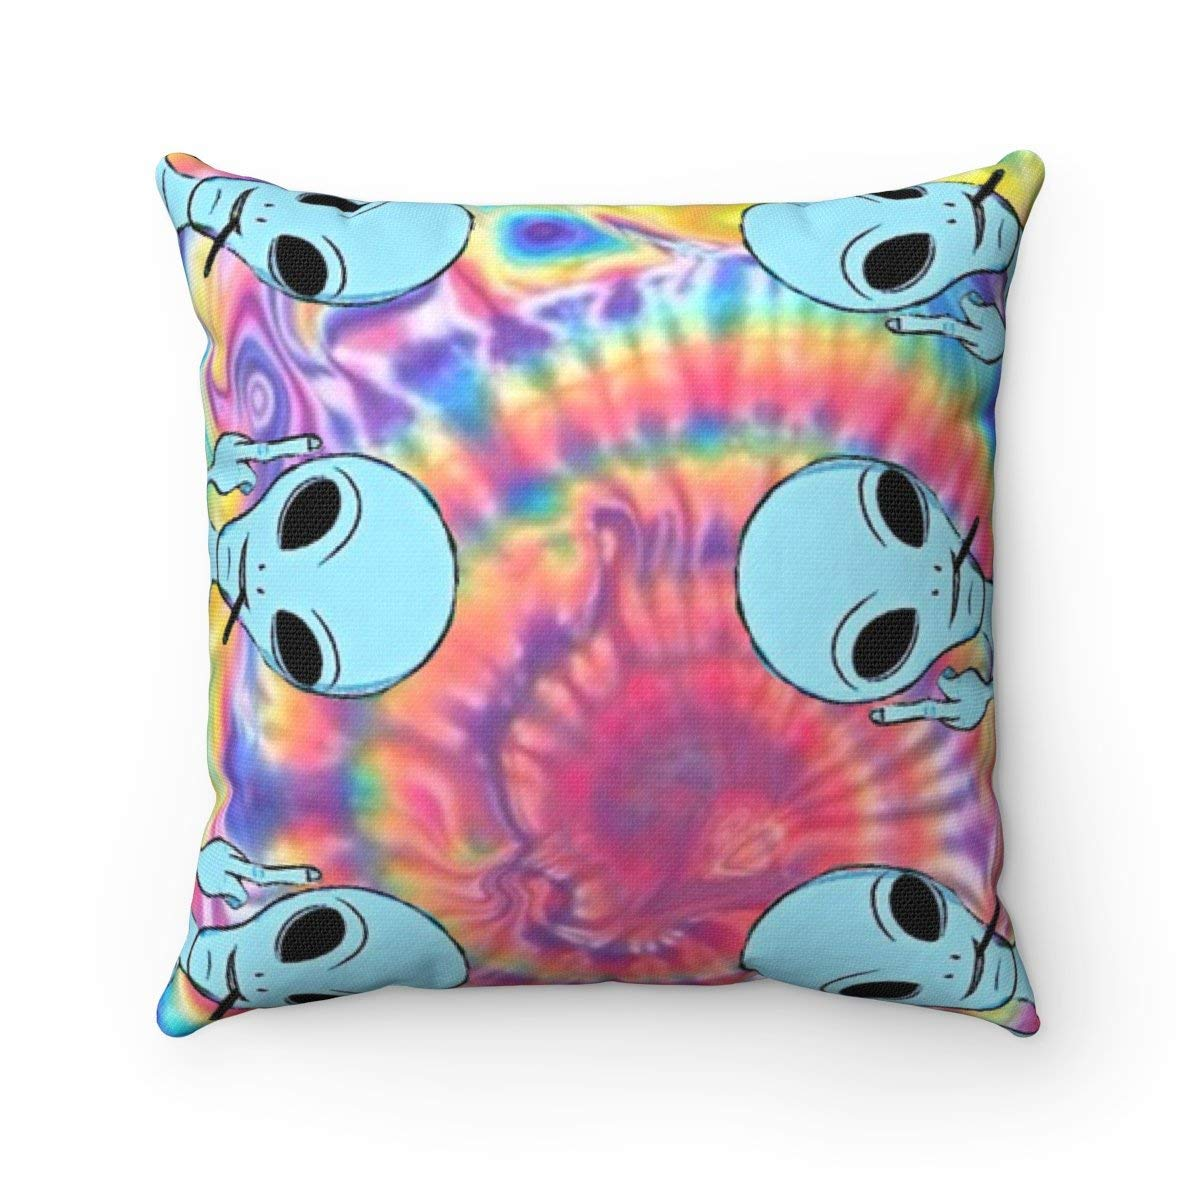 Buy Pattebom Alien Throw Pillow Tie Dye Home Decor Hipster Bedroom Funny Apartment Tumblr Cushion Online At Low Prices In India Amazon